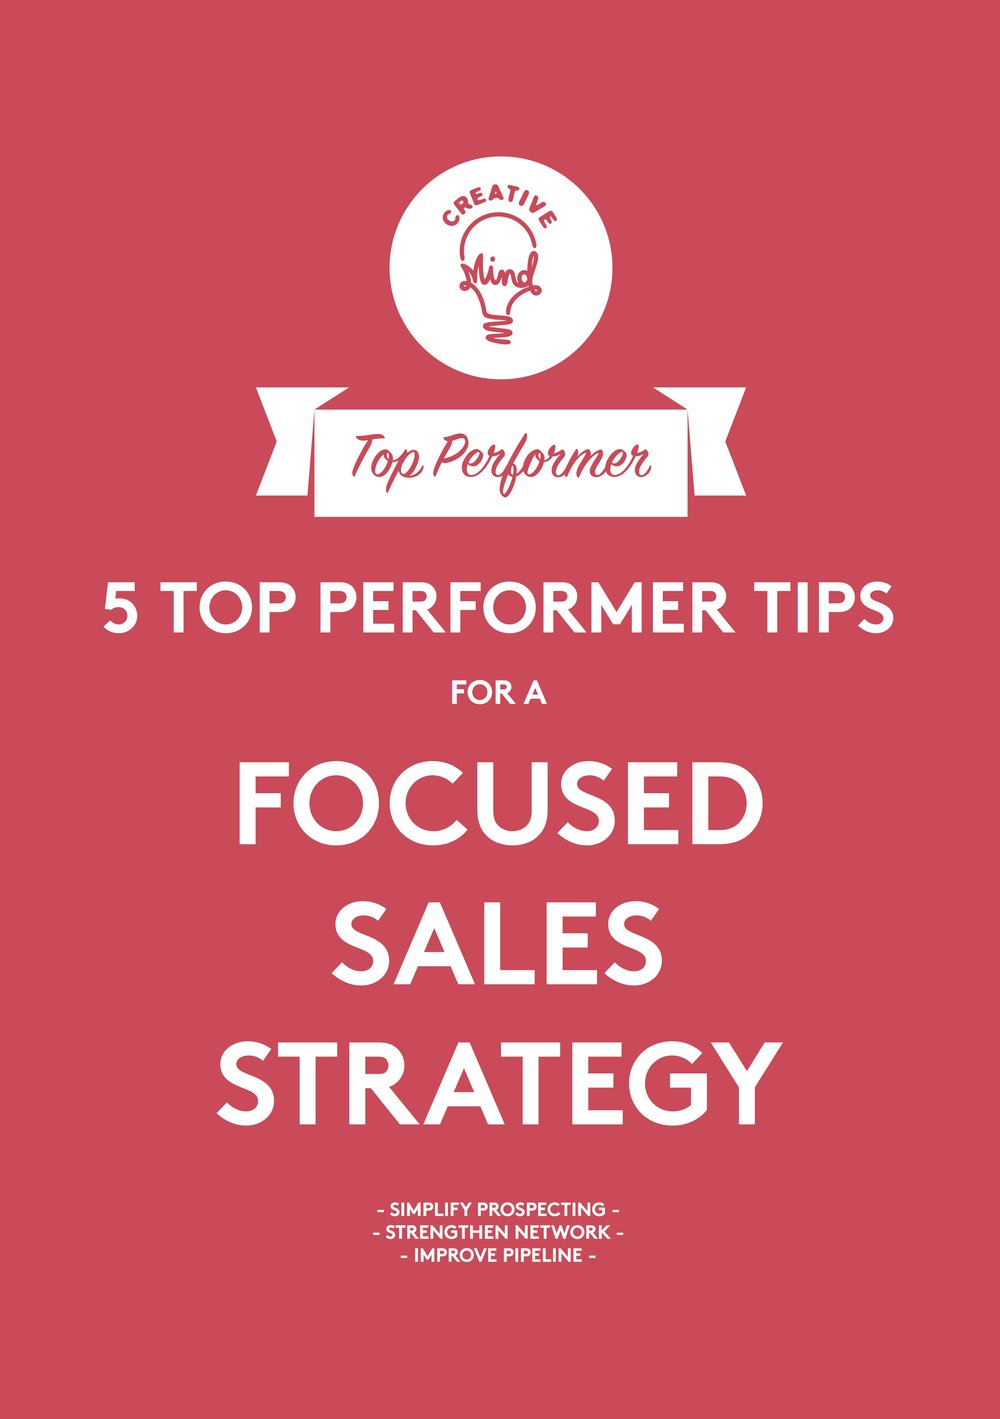 FREE DOWNLOAD: A focused sales strategy - Simplify prospectingStrengthen networkImprove pipeline